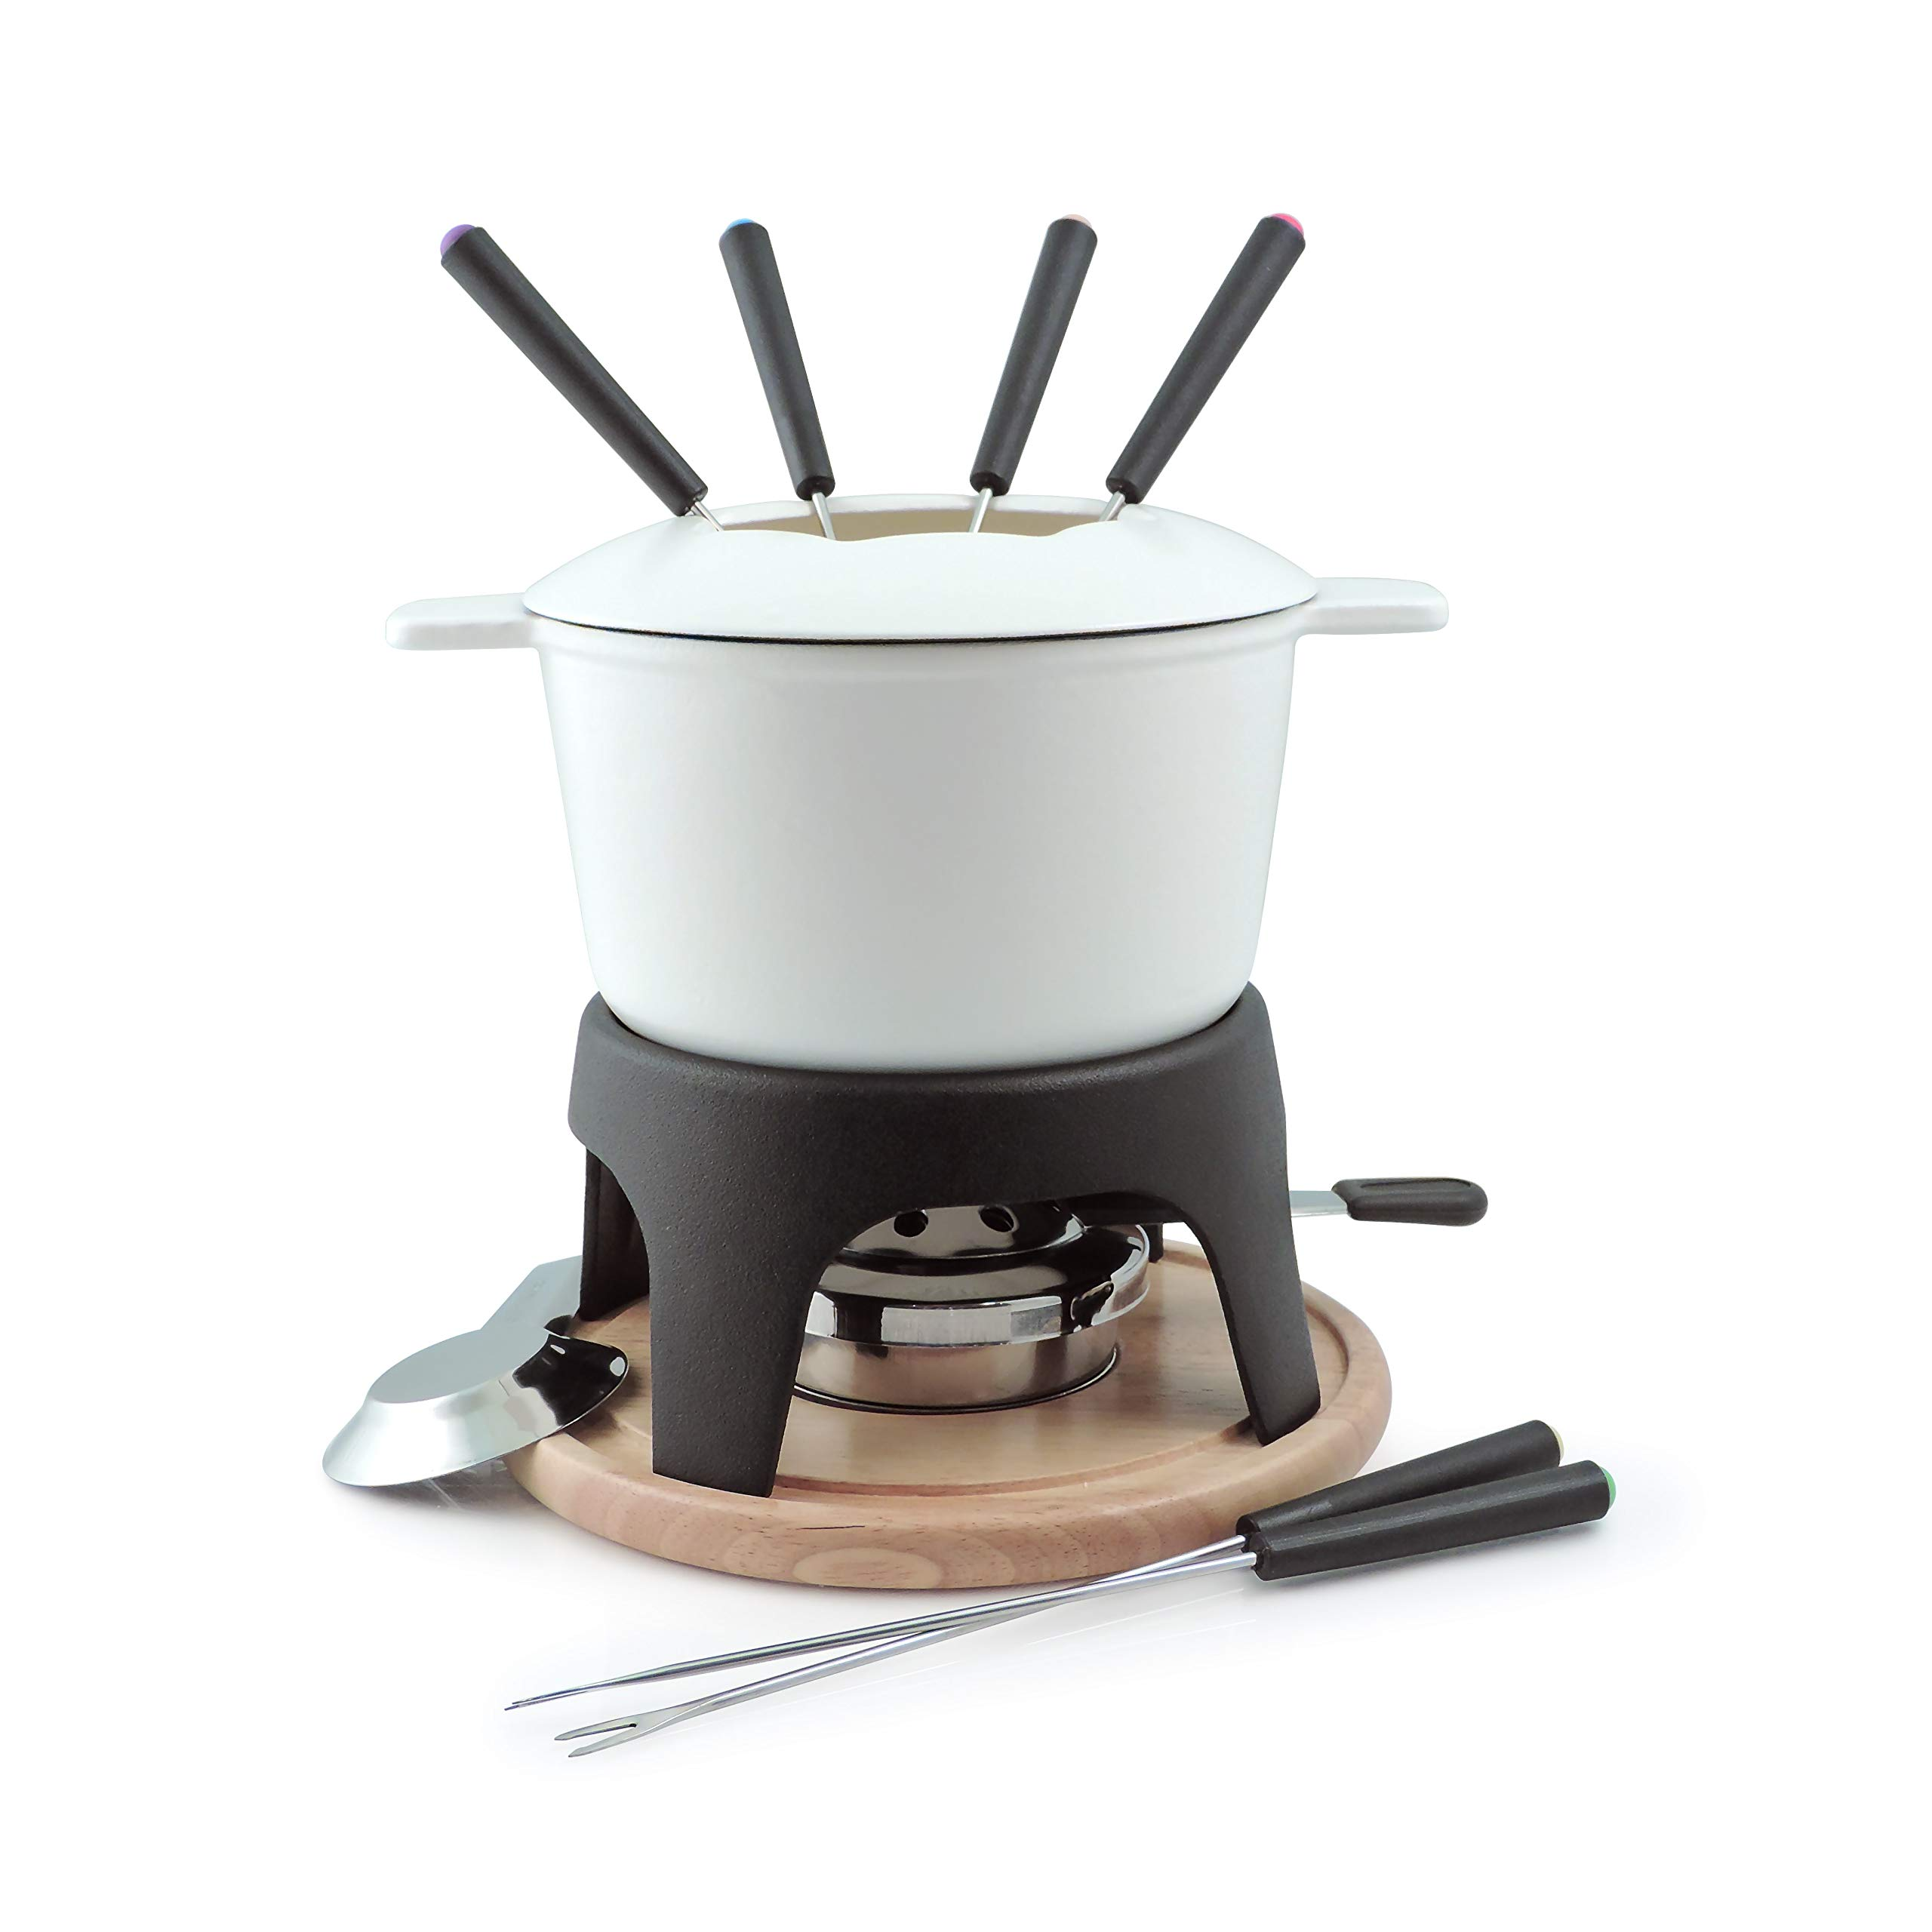 Swissmar F66707 Sierra 1.6-Quart Cast Iron Meat Fondue Set, 12-Piece, White by Swissmar